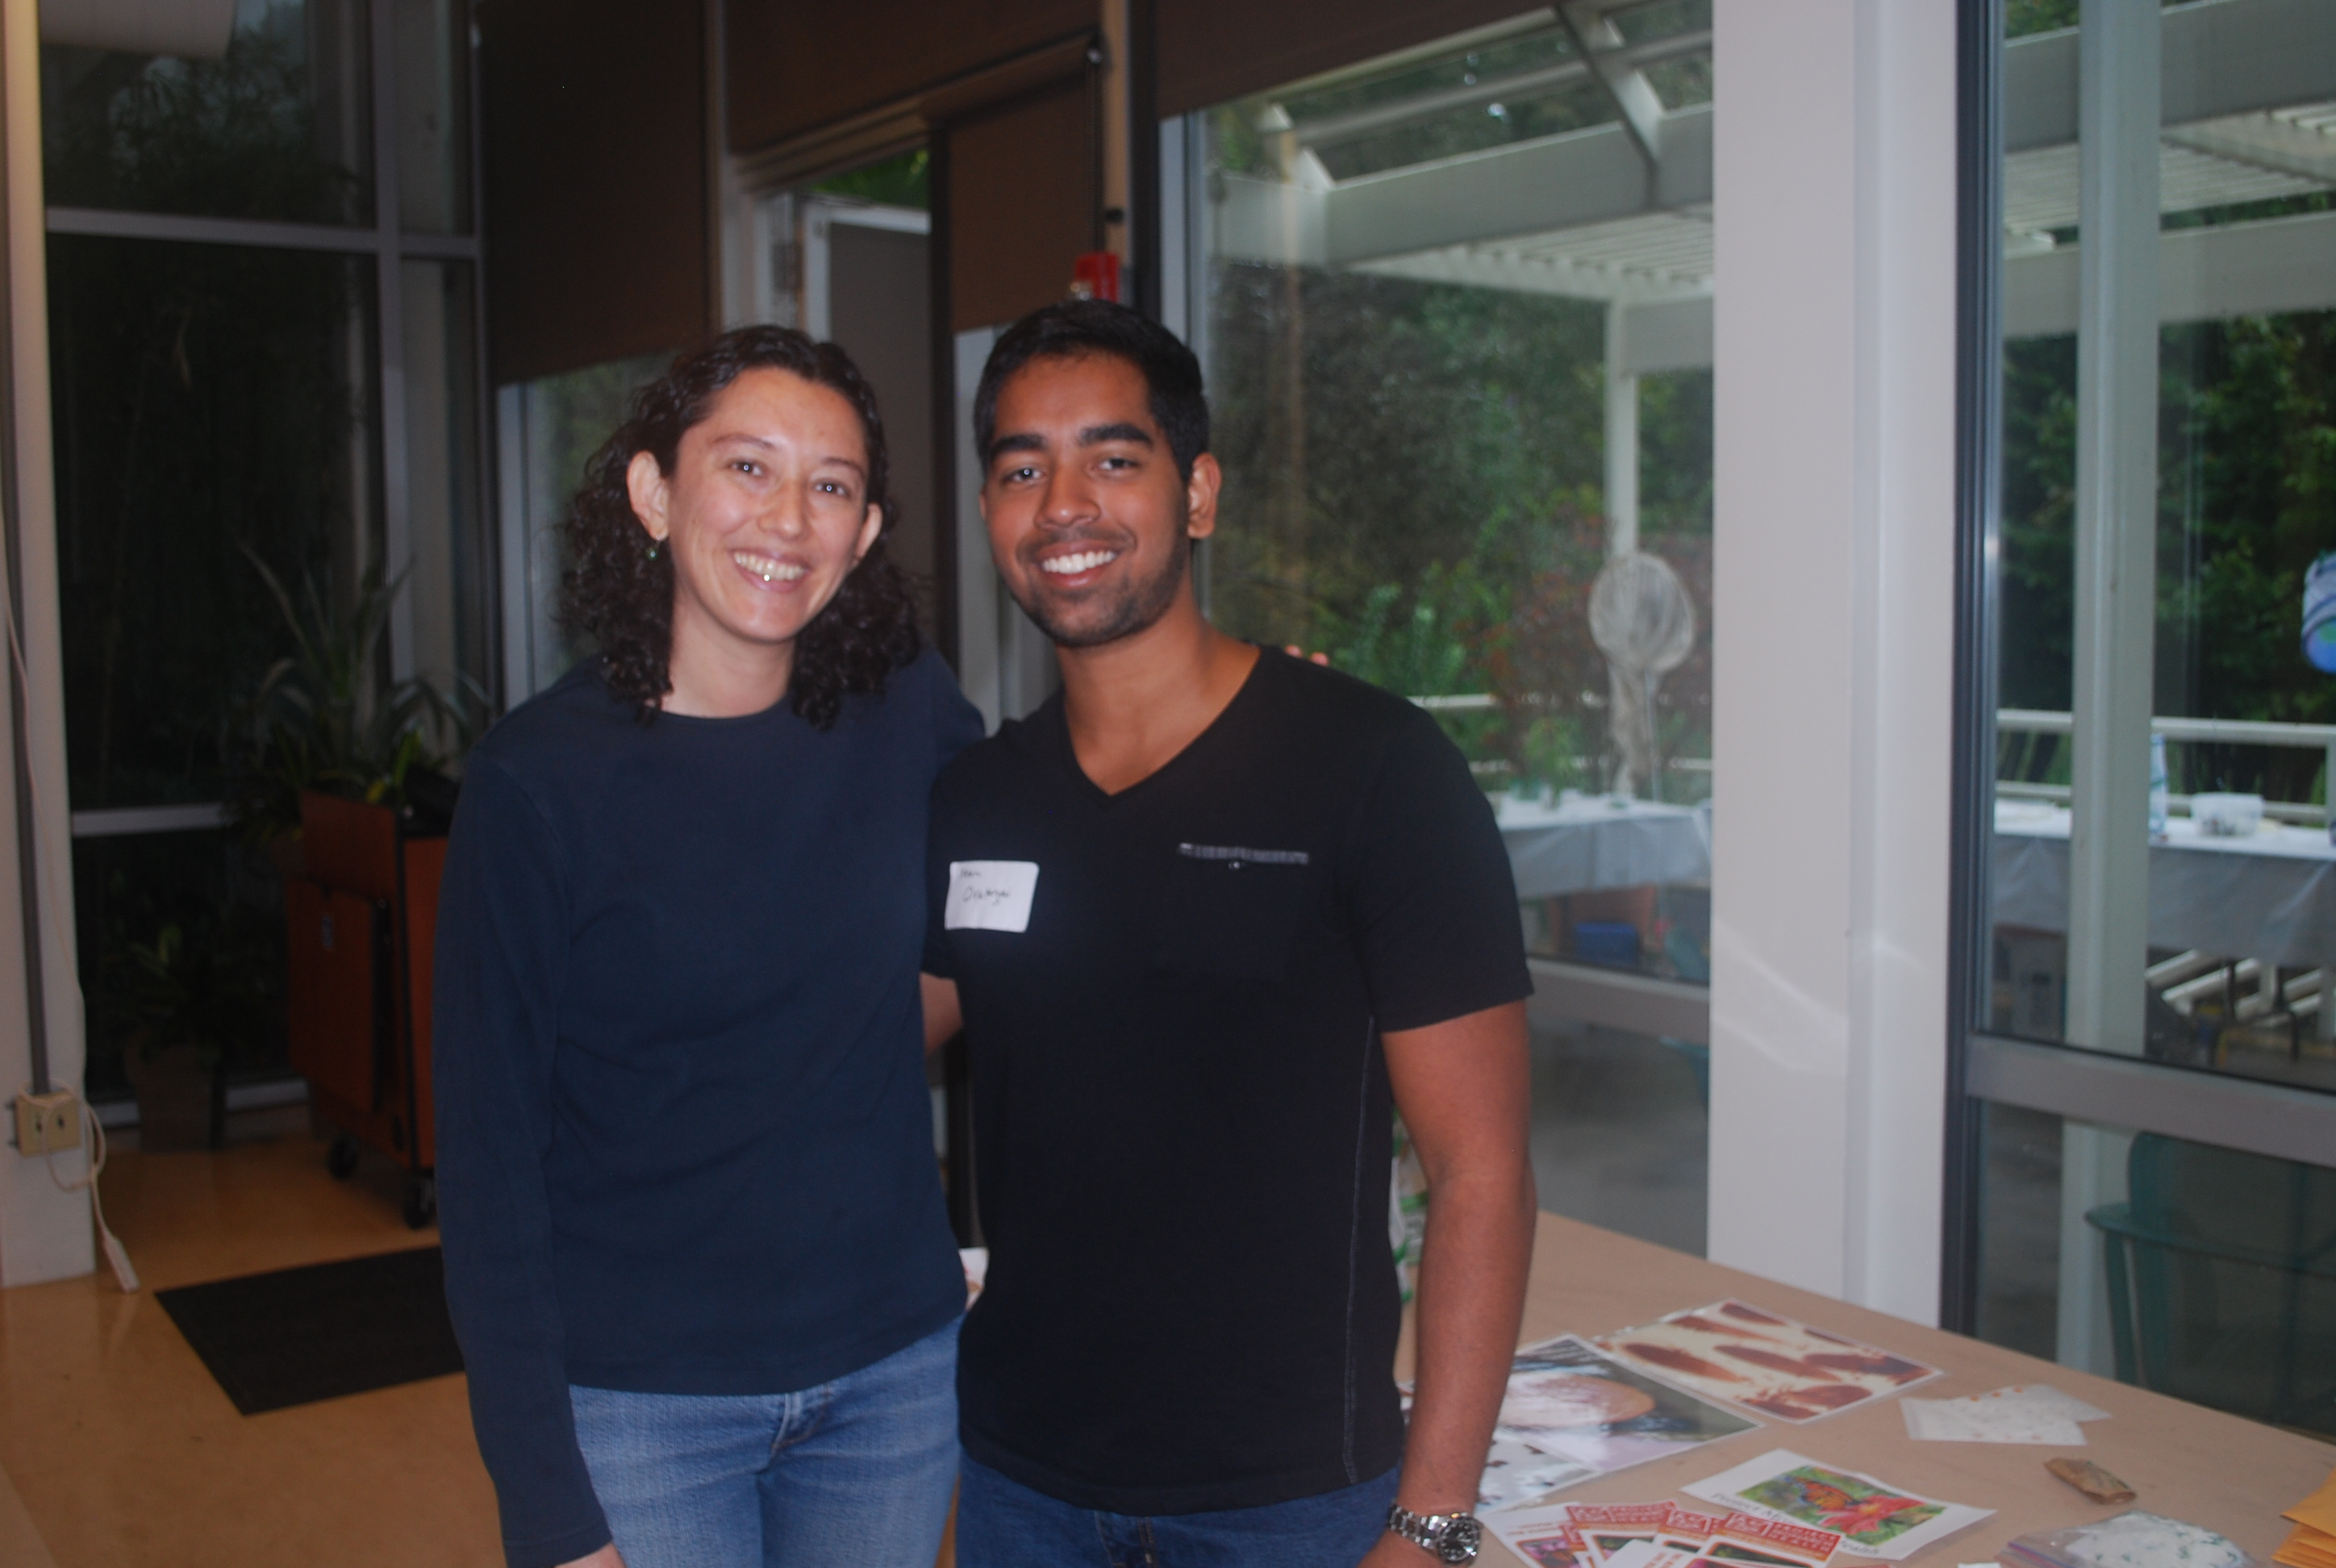 Paola Barriga and Sherayar Orakzai at Insectival 2015